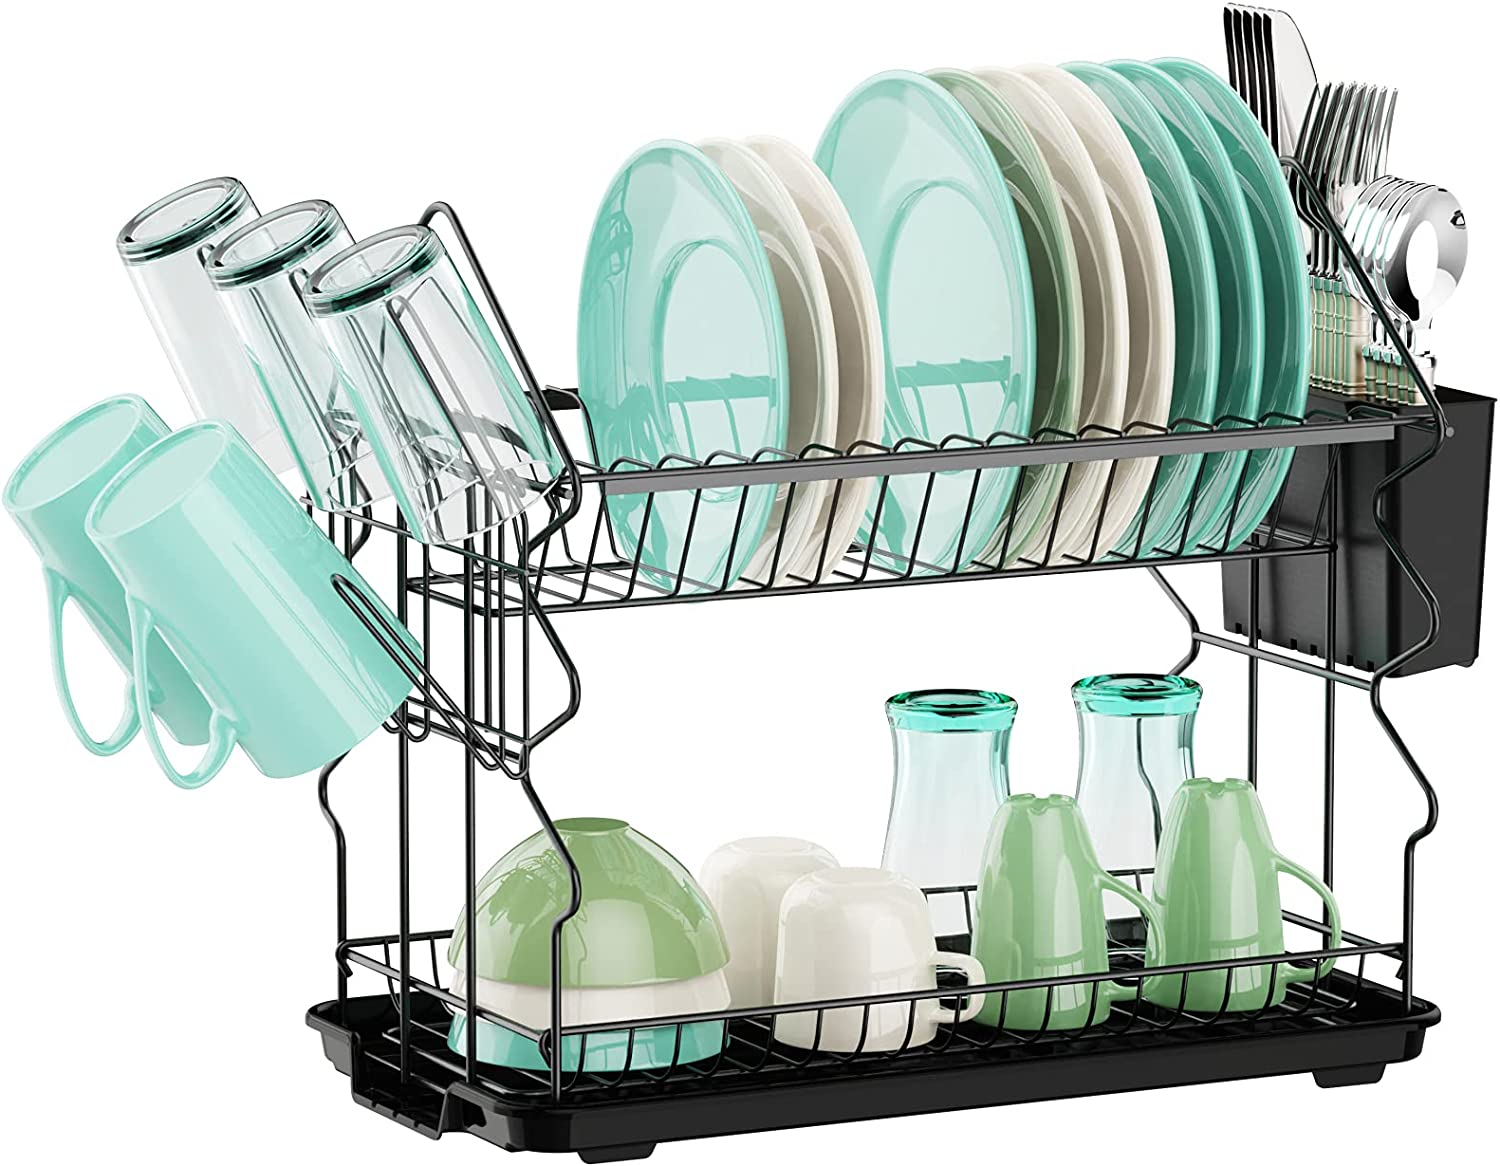 Dish Drying Rack Warmfill Be super supreme welcome 2 Drainboard and Meta Tier